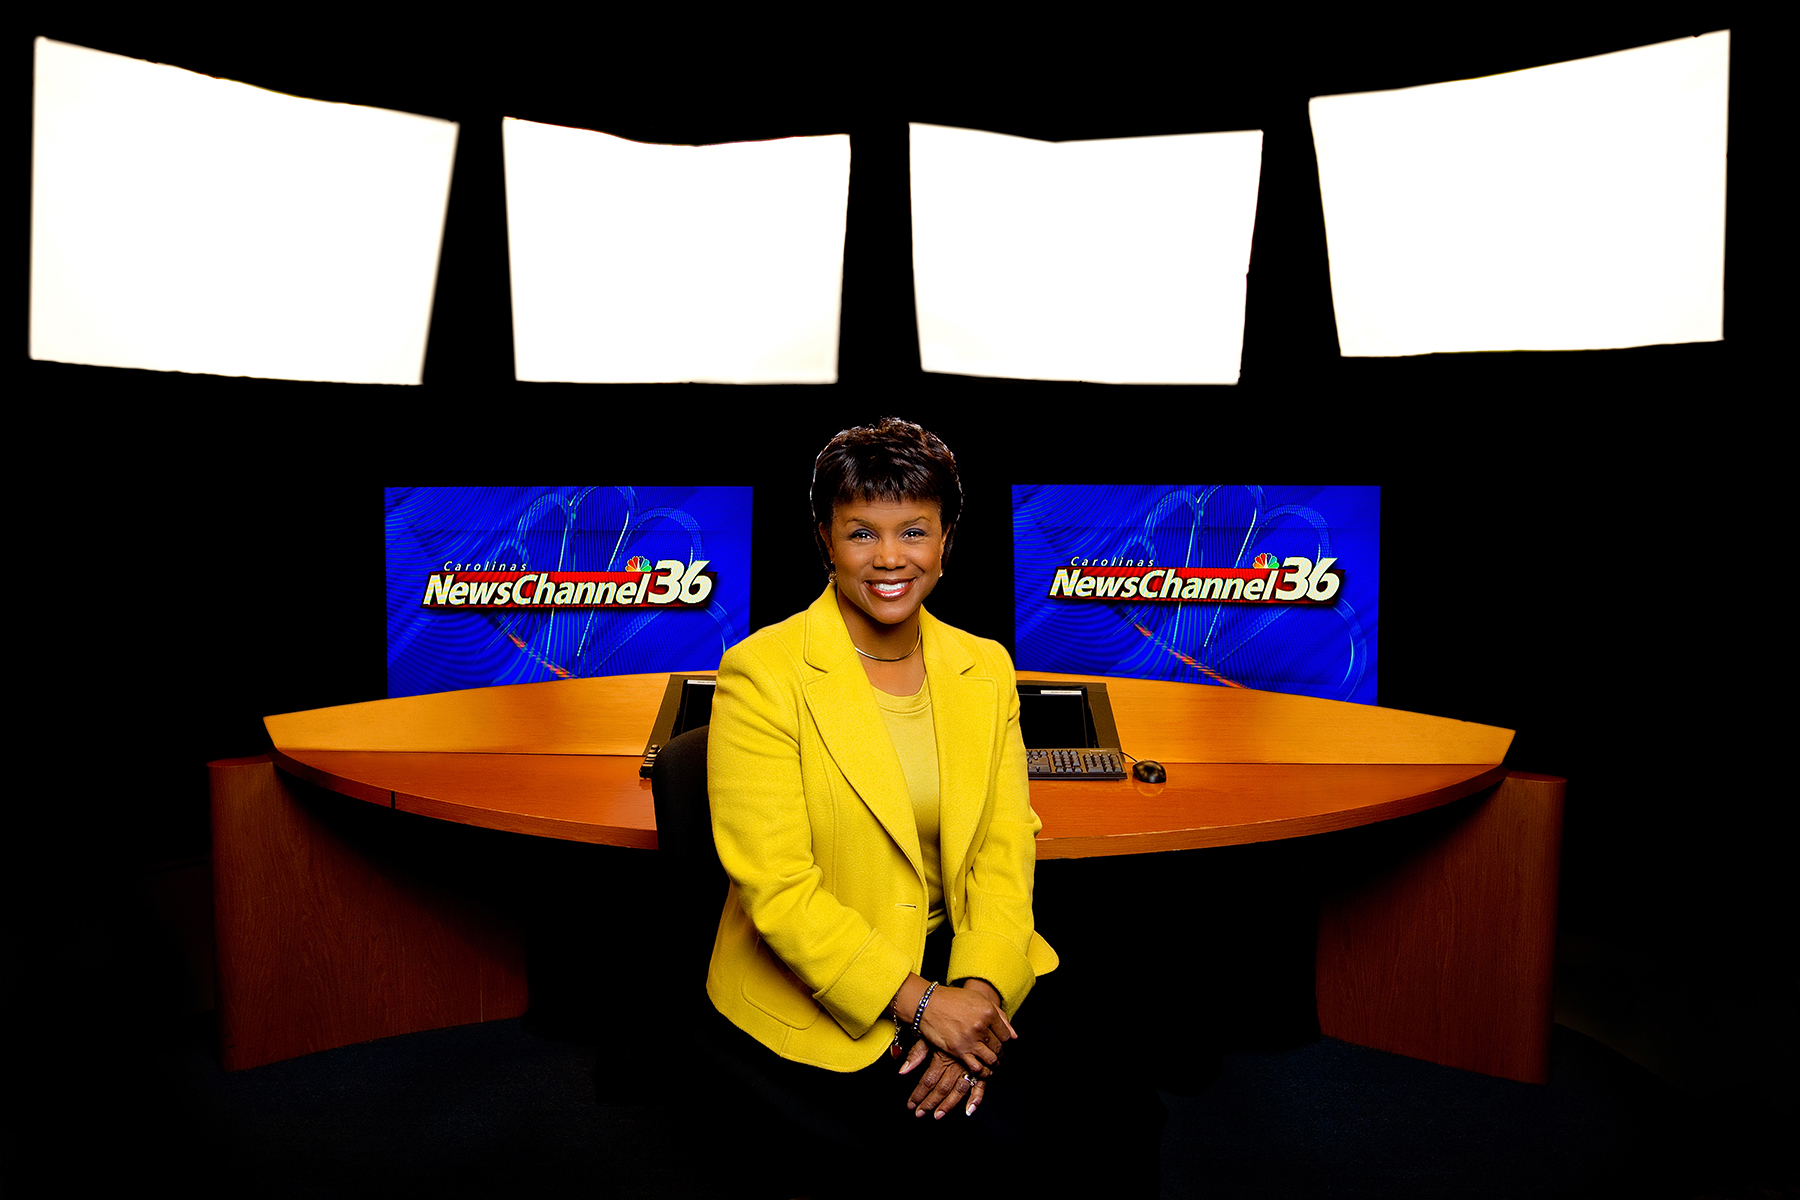 Corporate Portrait Photography  of WCNC-TV anchor Sonja Gantt.Charlotte Photographer -PatrickSchneiderPhoto.com